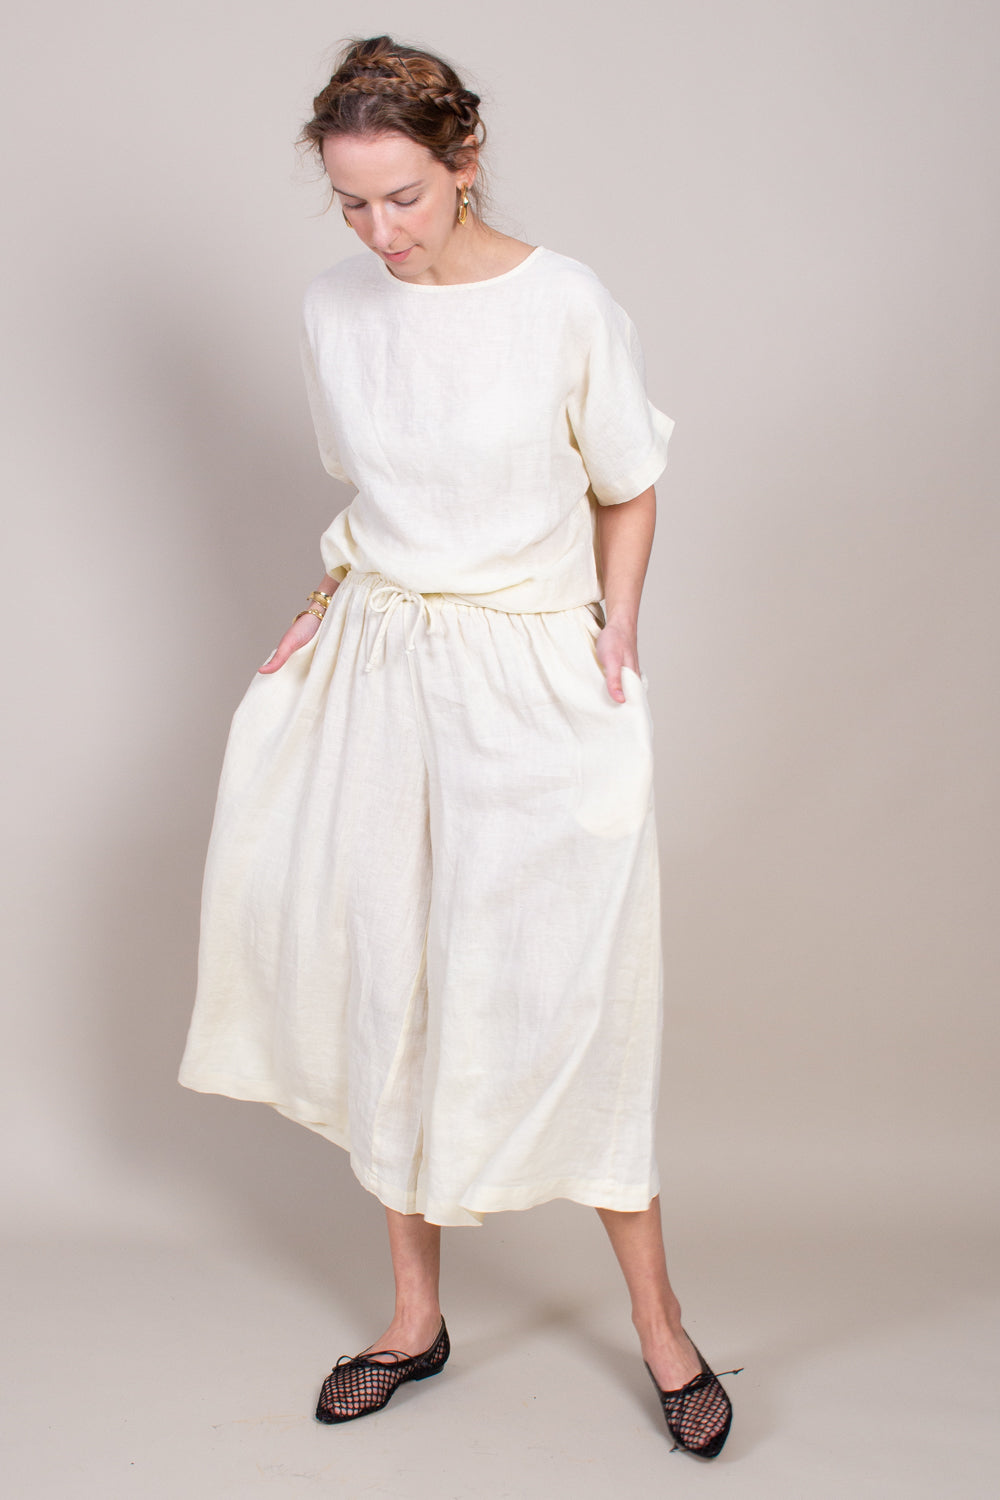 Black Crane Box Top in Cream - Vert & Vogue